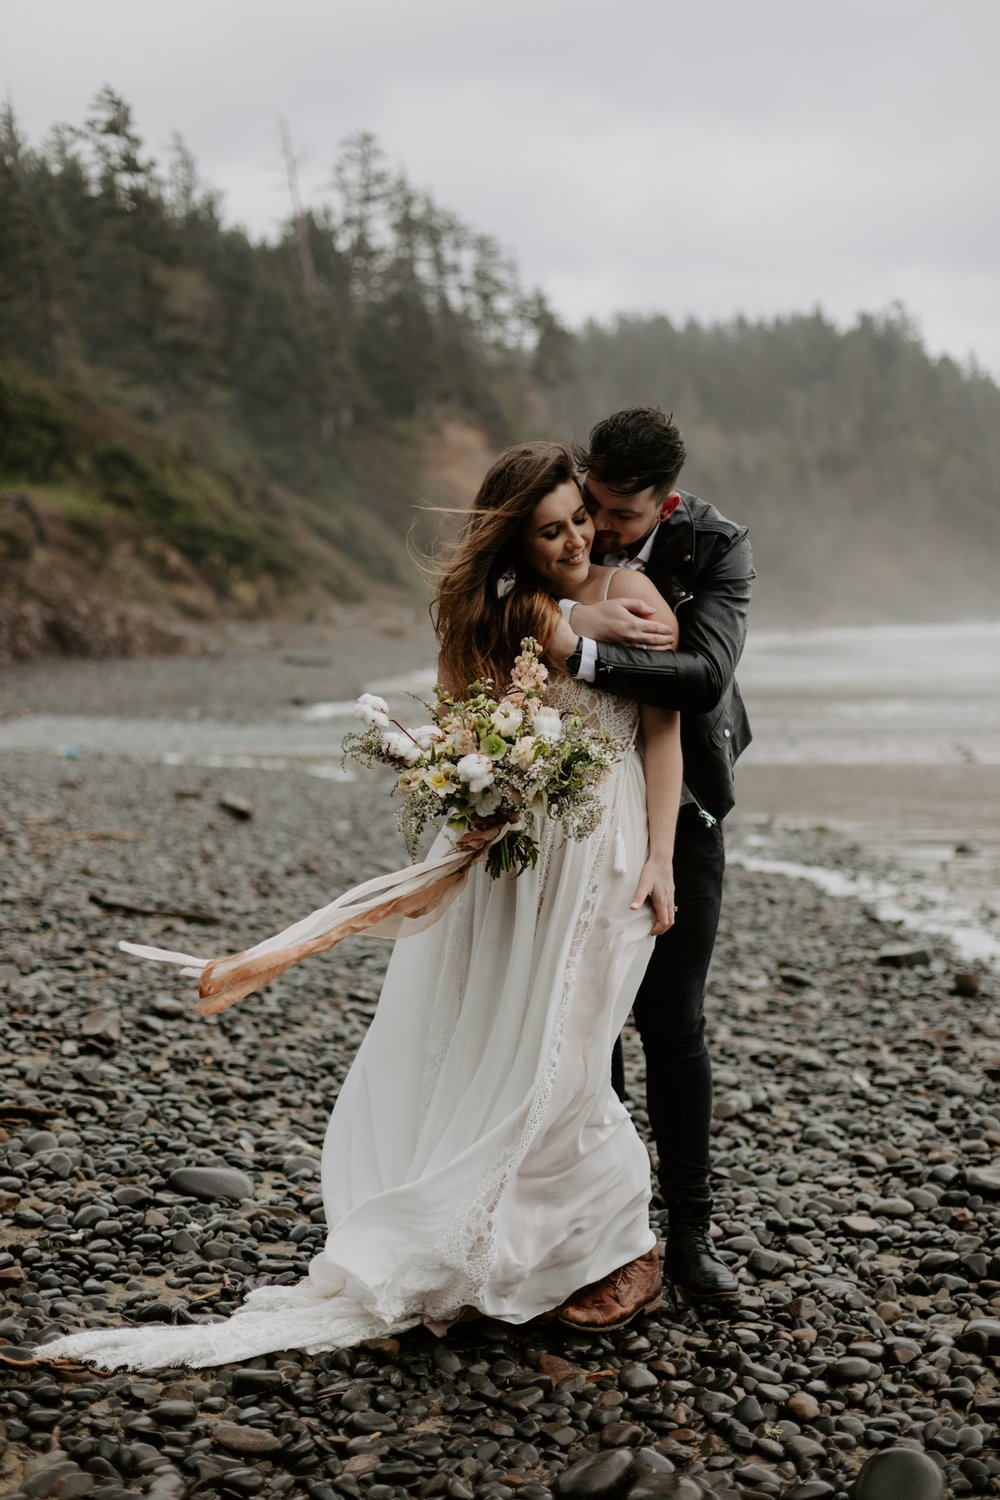 intimate-oregon-coast-elopement-2018-04-26_0010.jpg